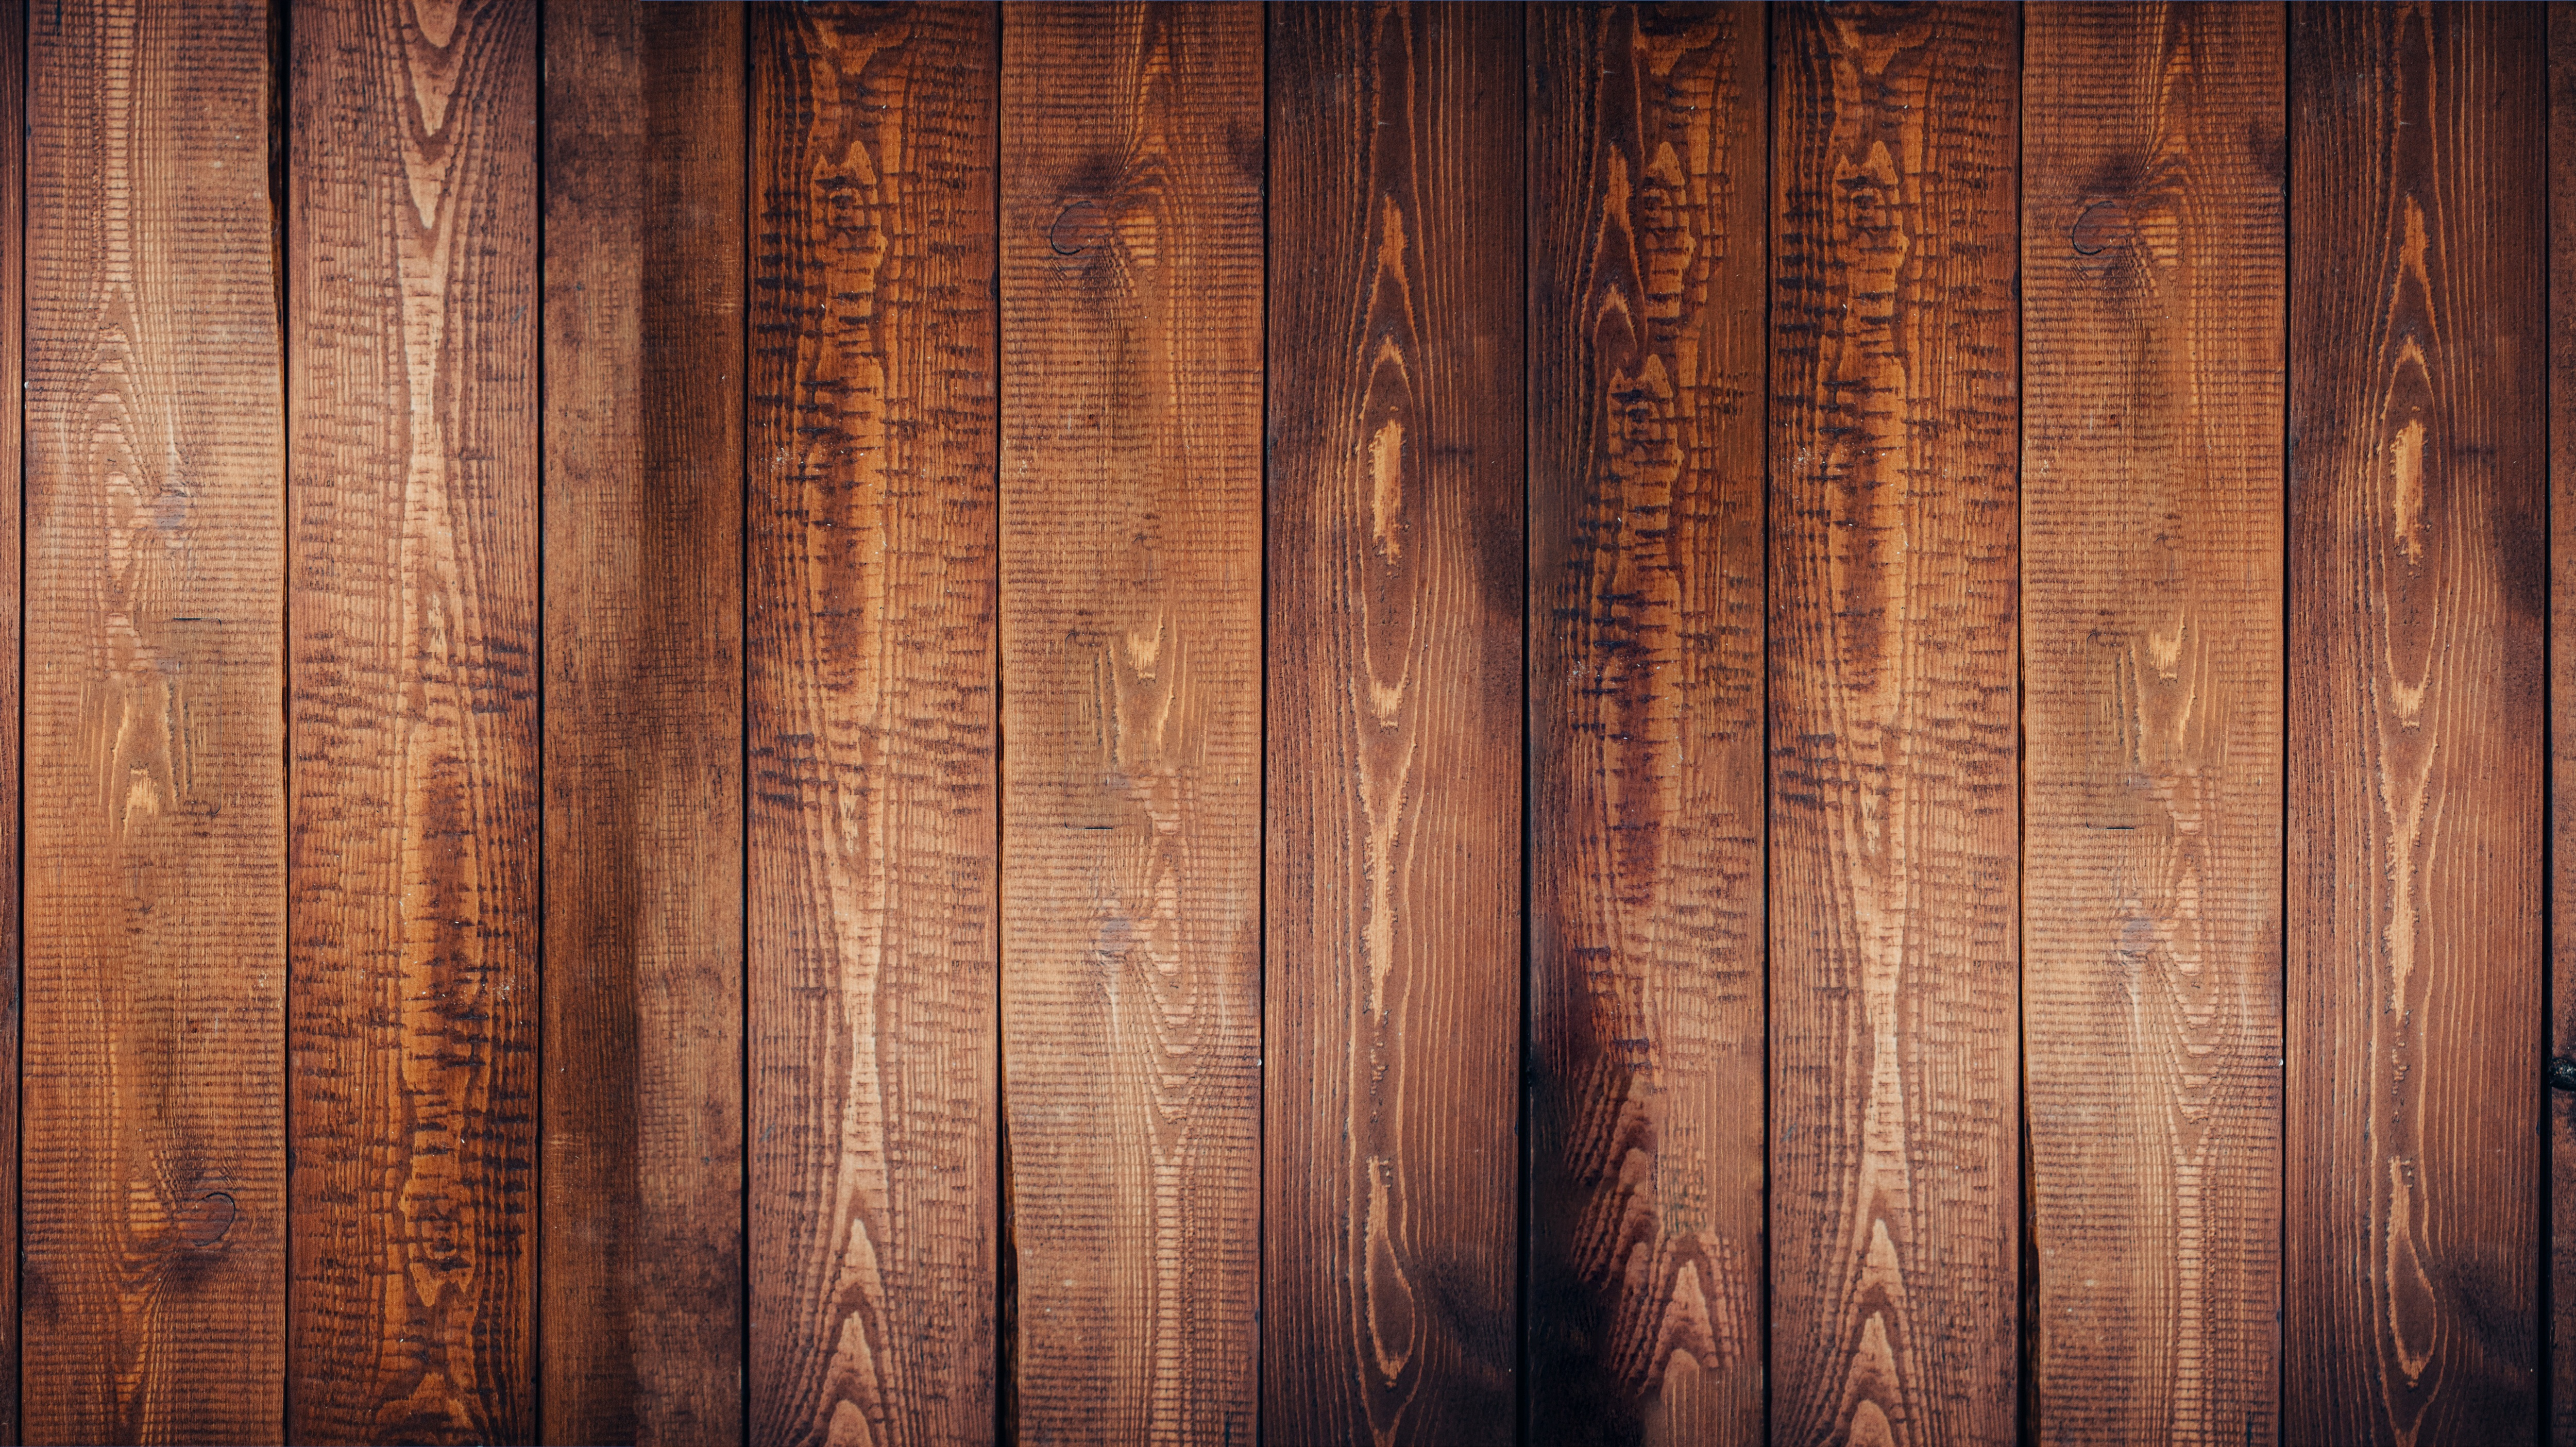 Floor Wood 5k Hd Others 4k Wallpapers Images Backgrounds Photos